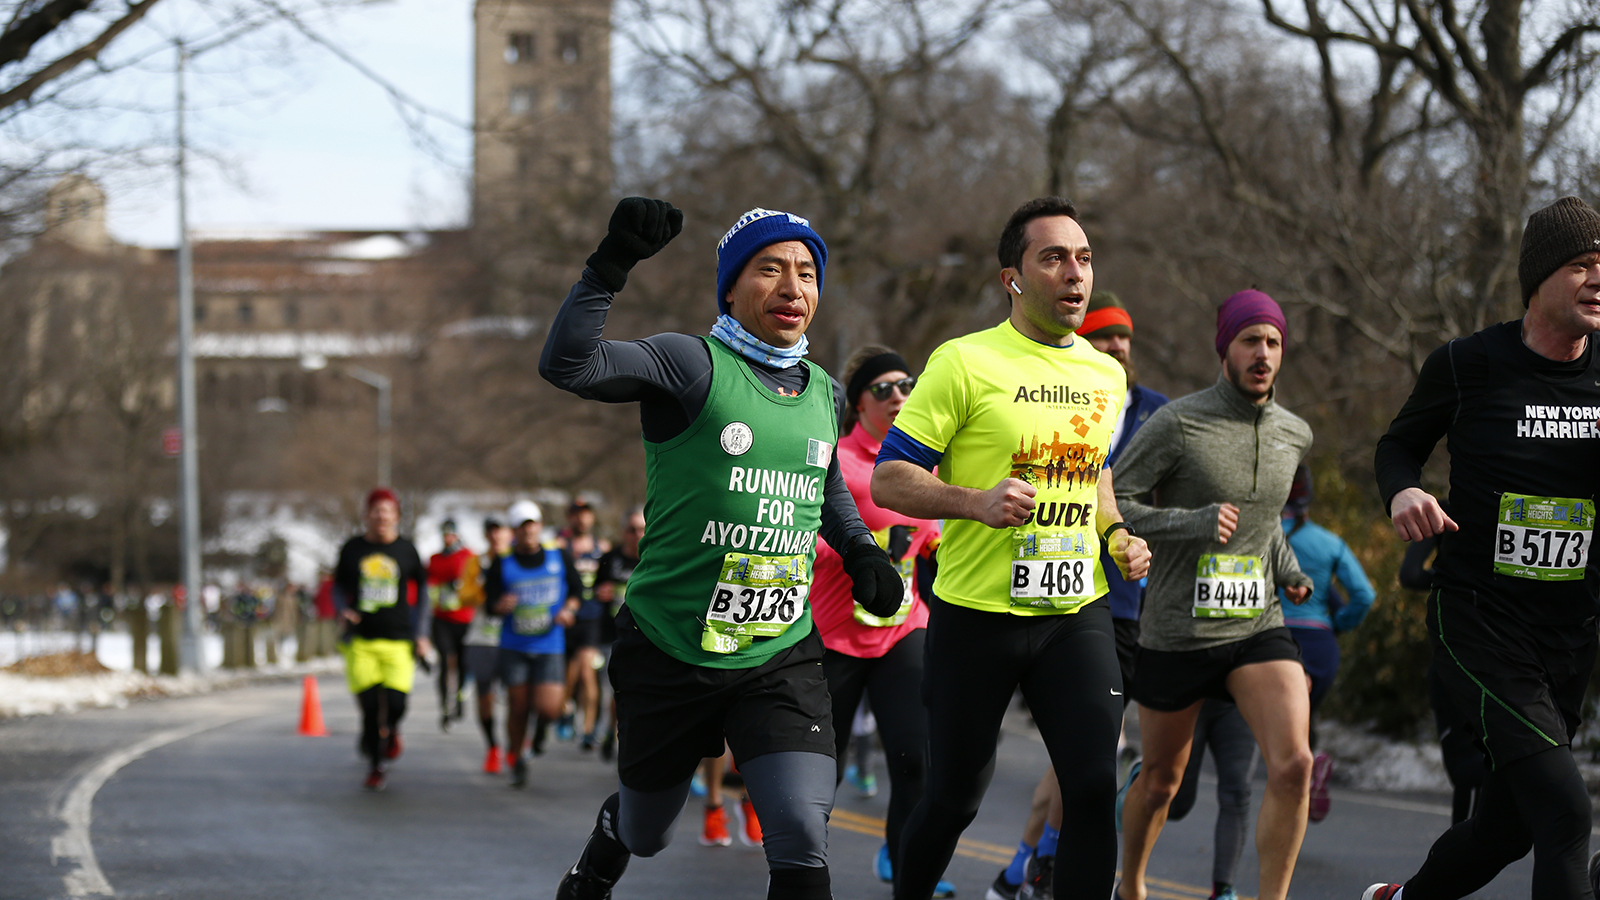 Club runners in a race in Central Park during winter